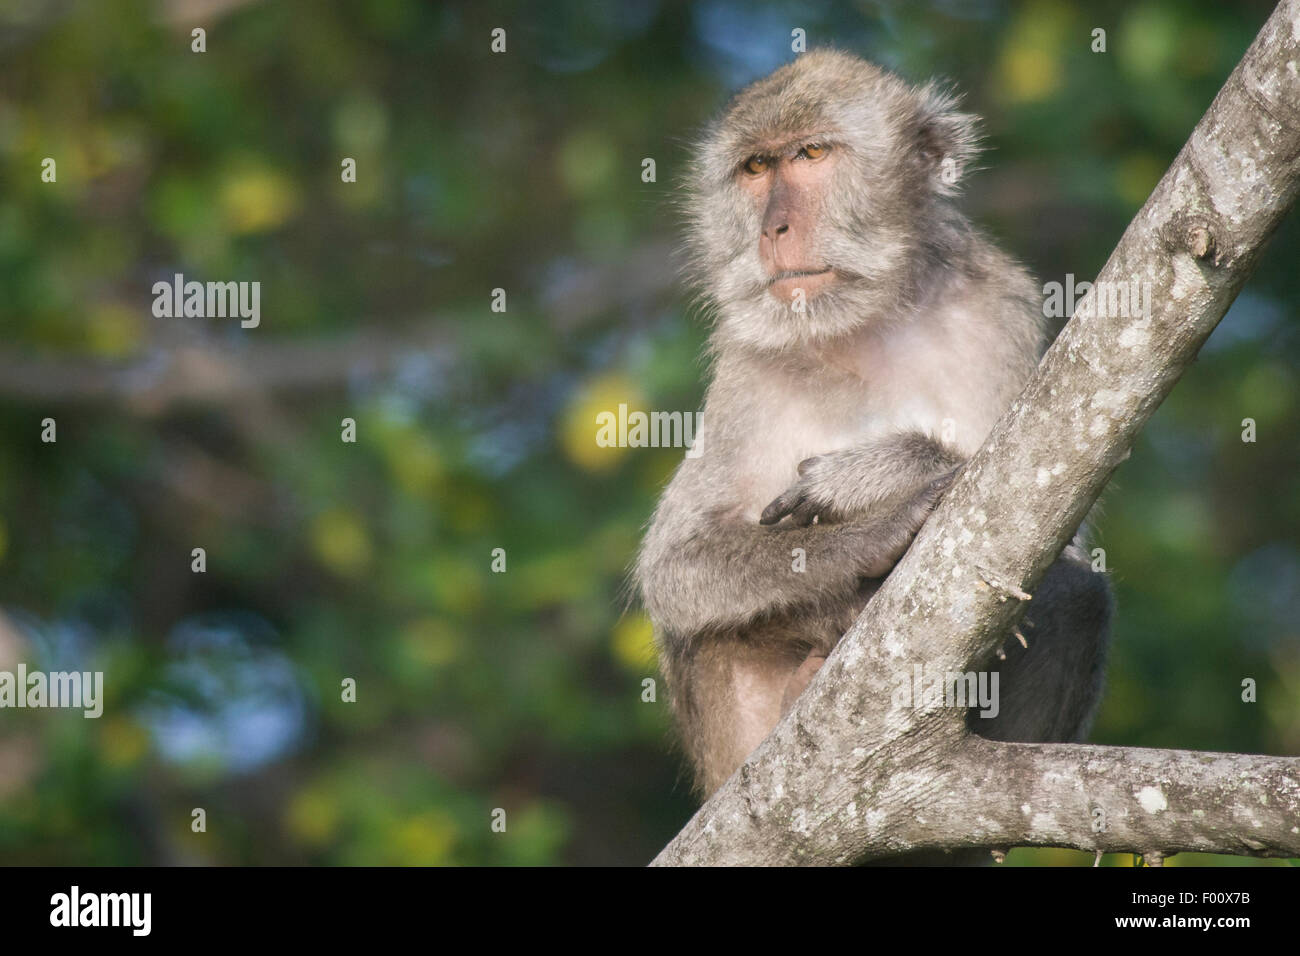 Crab-eating macaque with crossed arms. - Stock Image